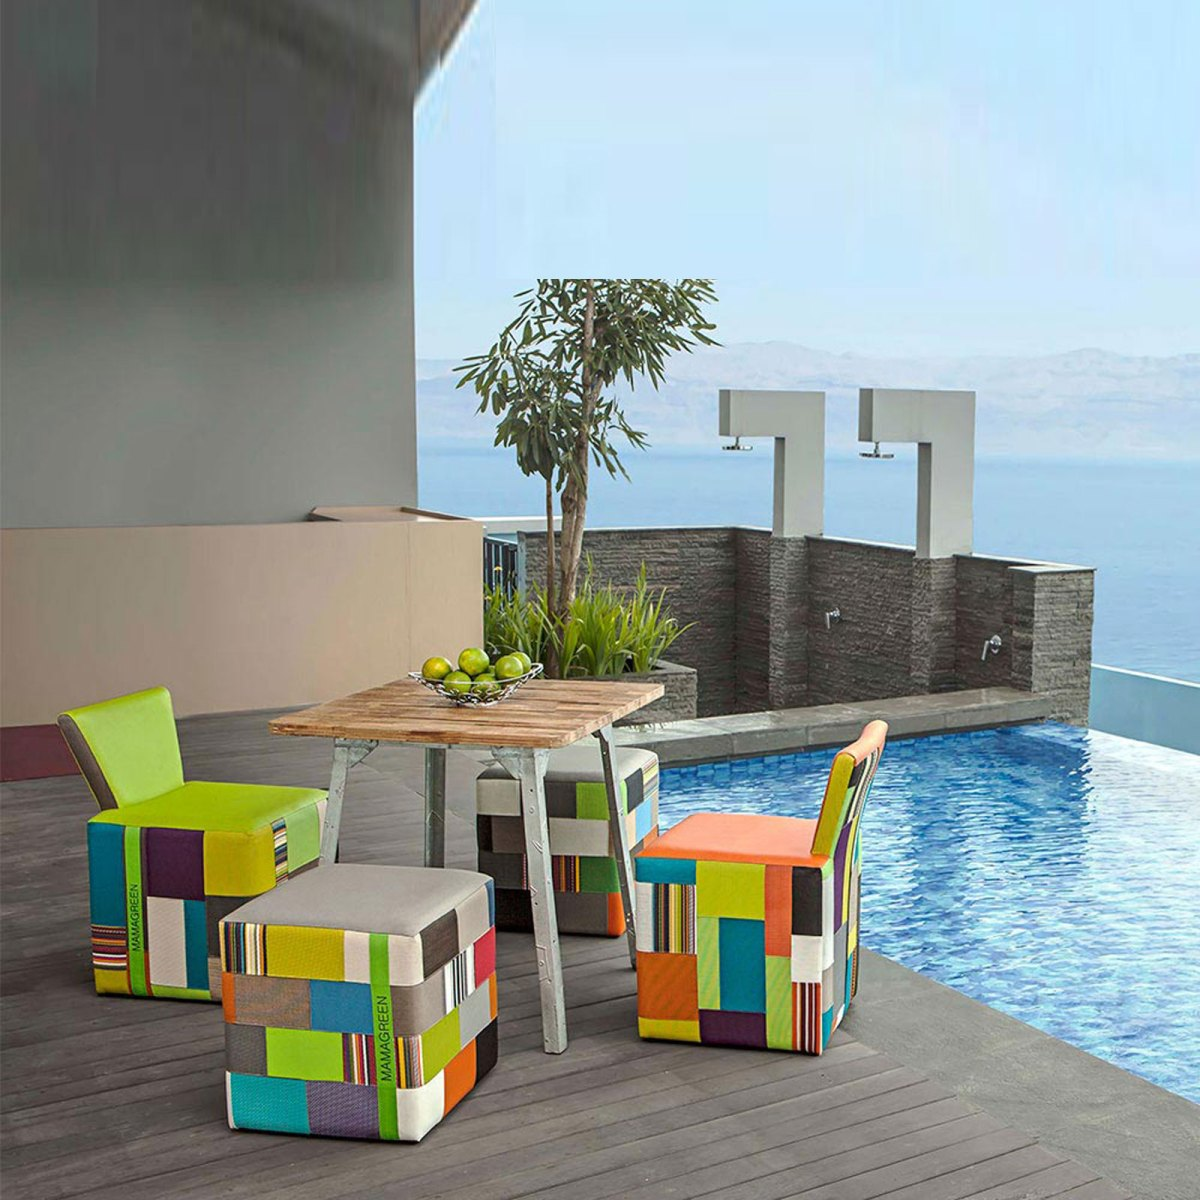 Contemporary-outdoor-furniture-design-with-colorful-decor-and-wooden-table-in-infinity-pool-landscaping-ideas